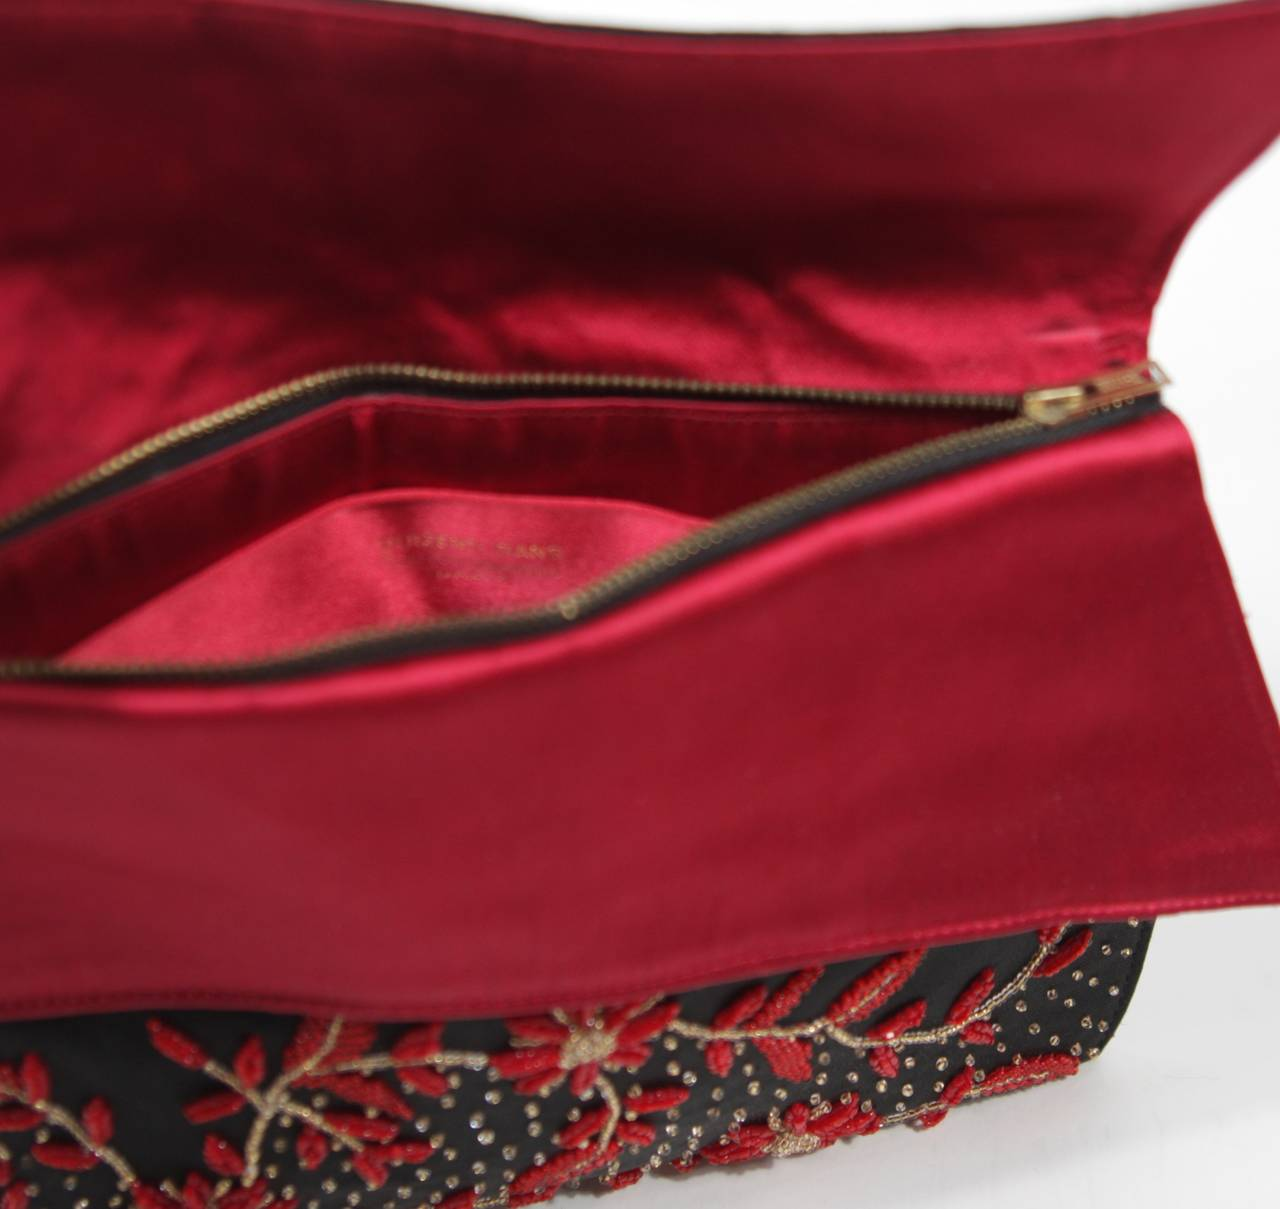 Duizend-Gans Black Beaded Satin Evening Clutch with Red Lining For Sale 2